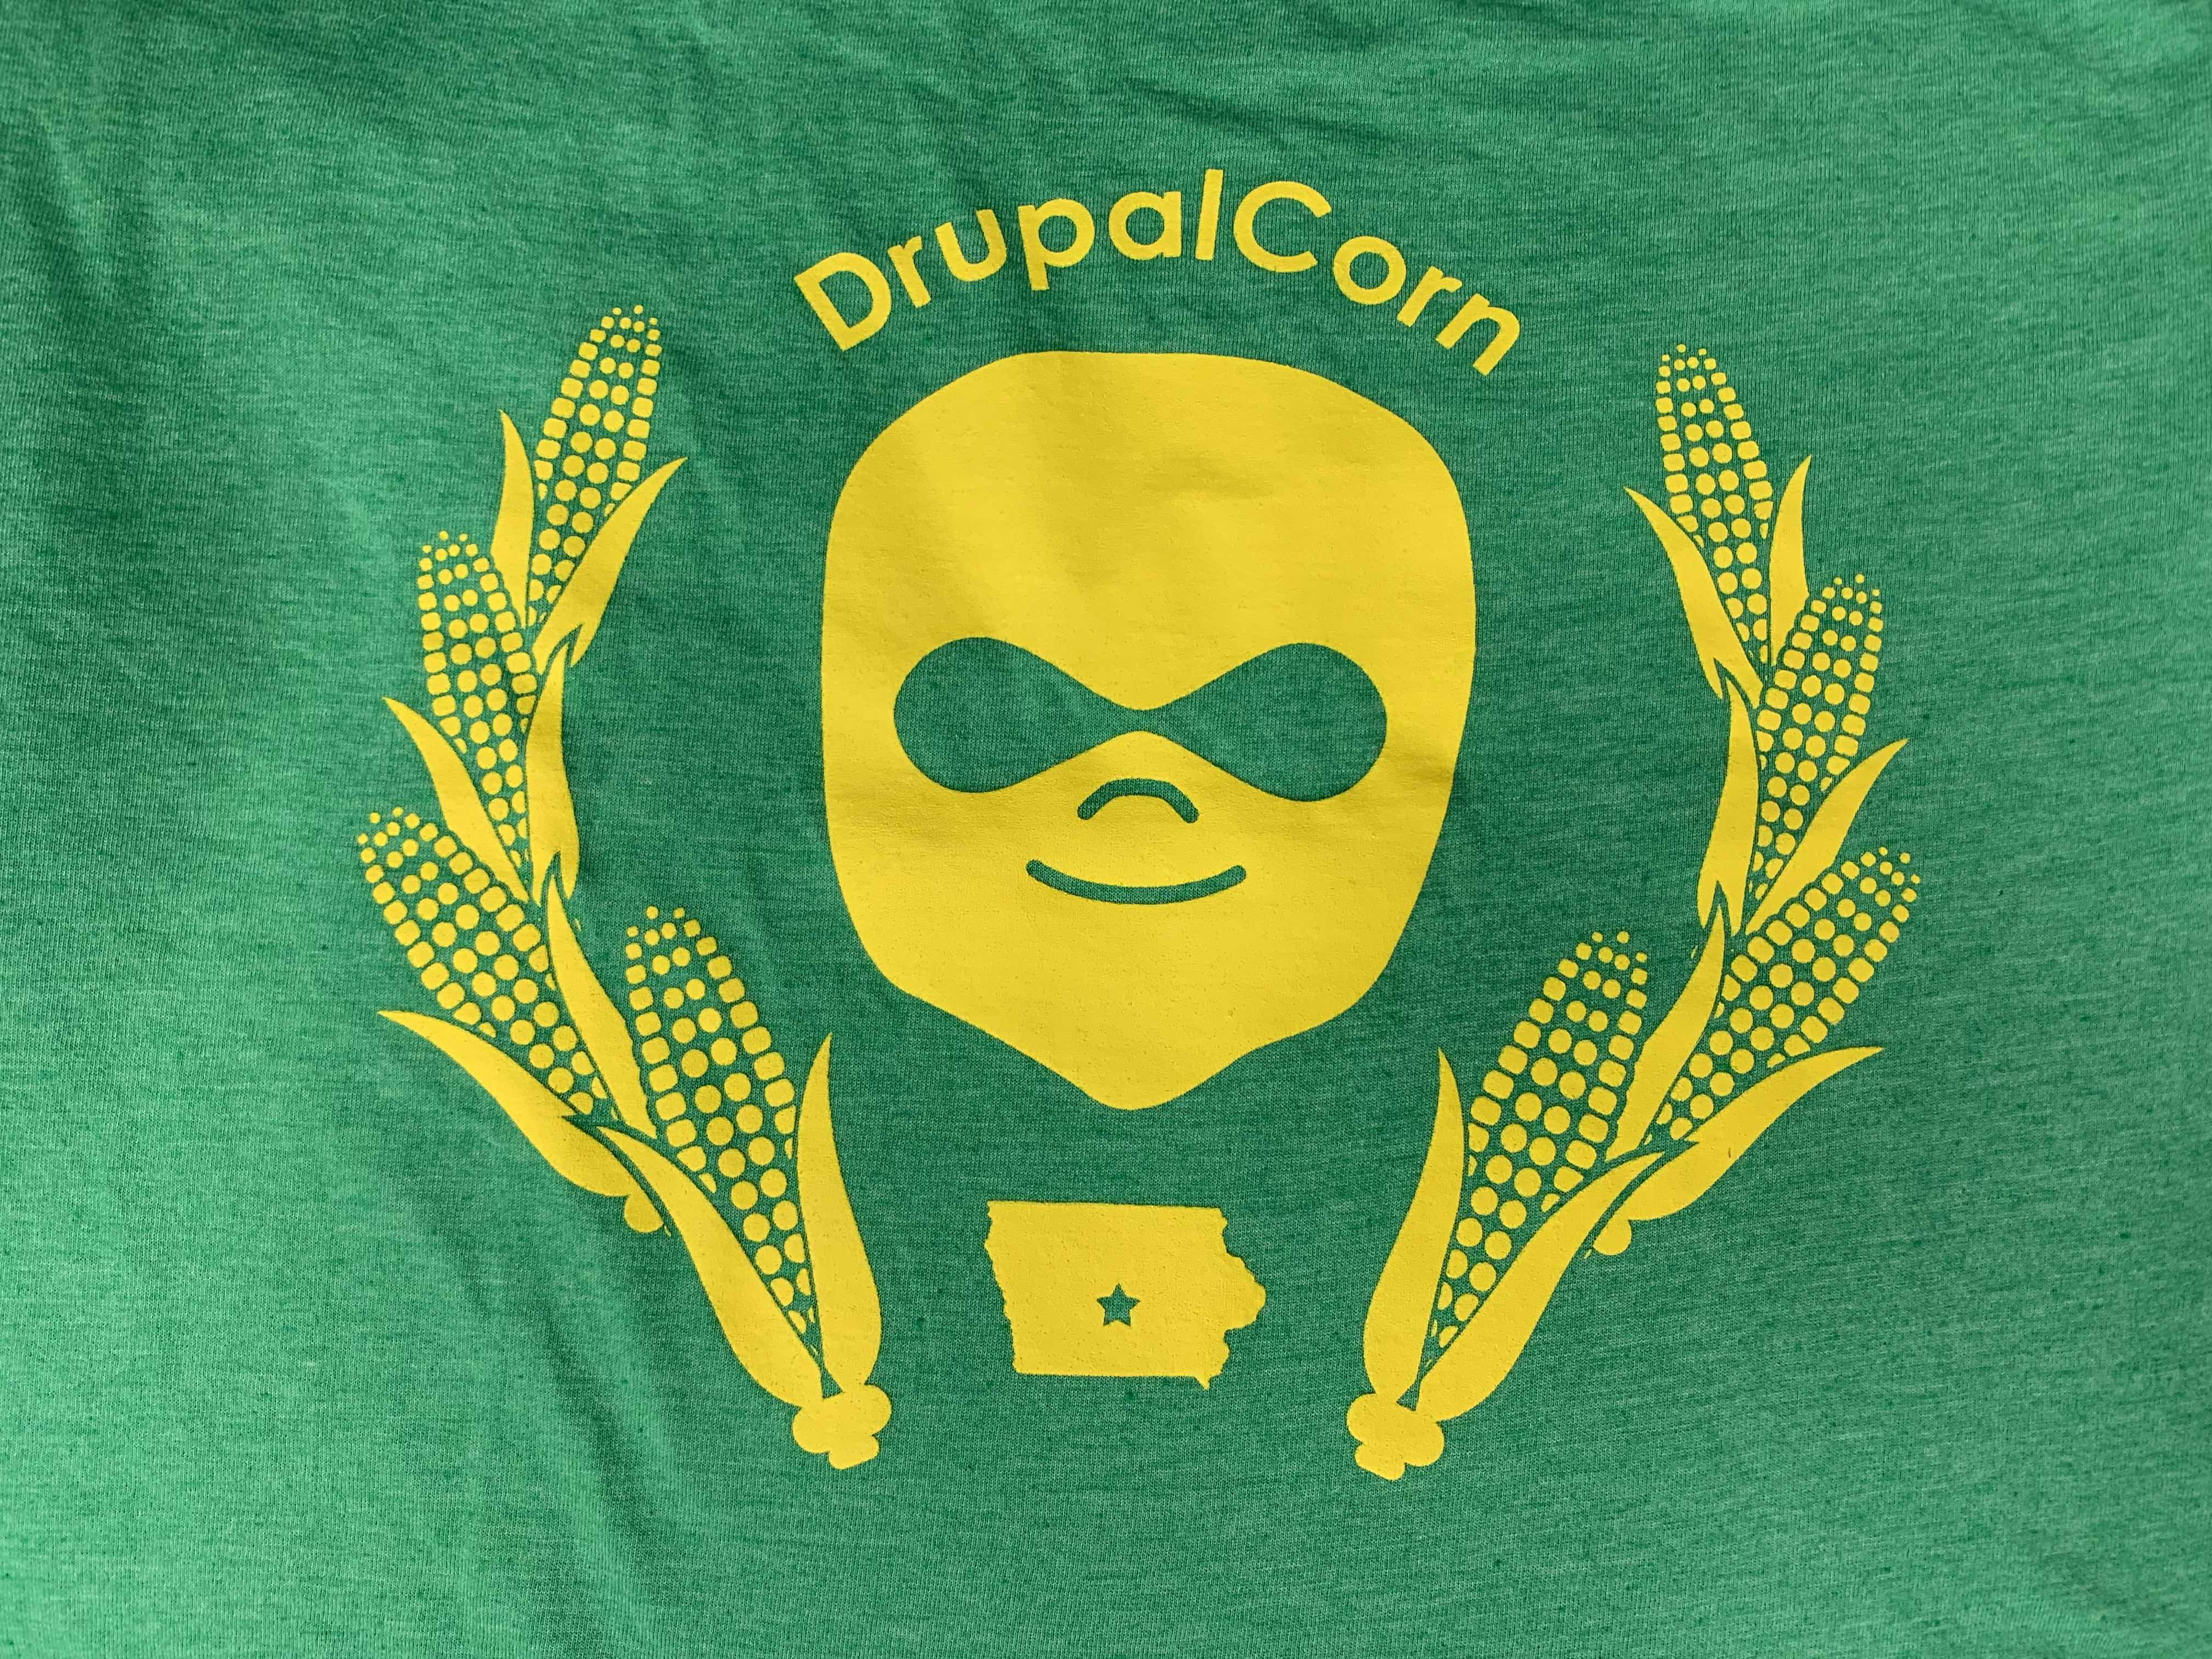 2018 Youth DrupalCorn Shirt - Green with white lines.